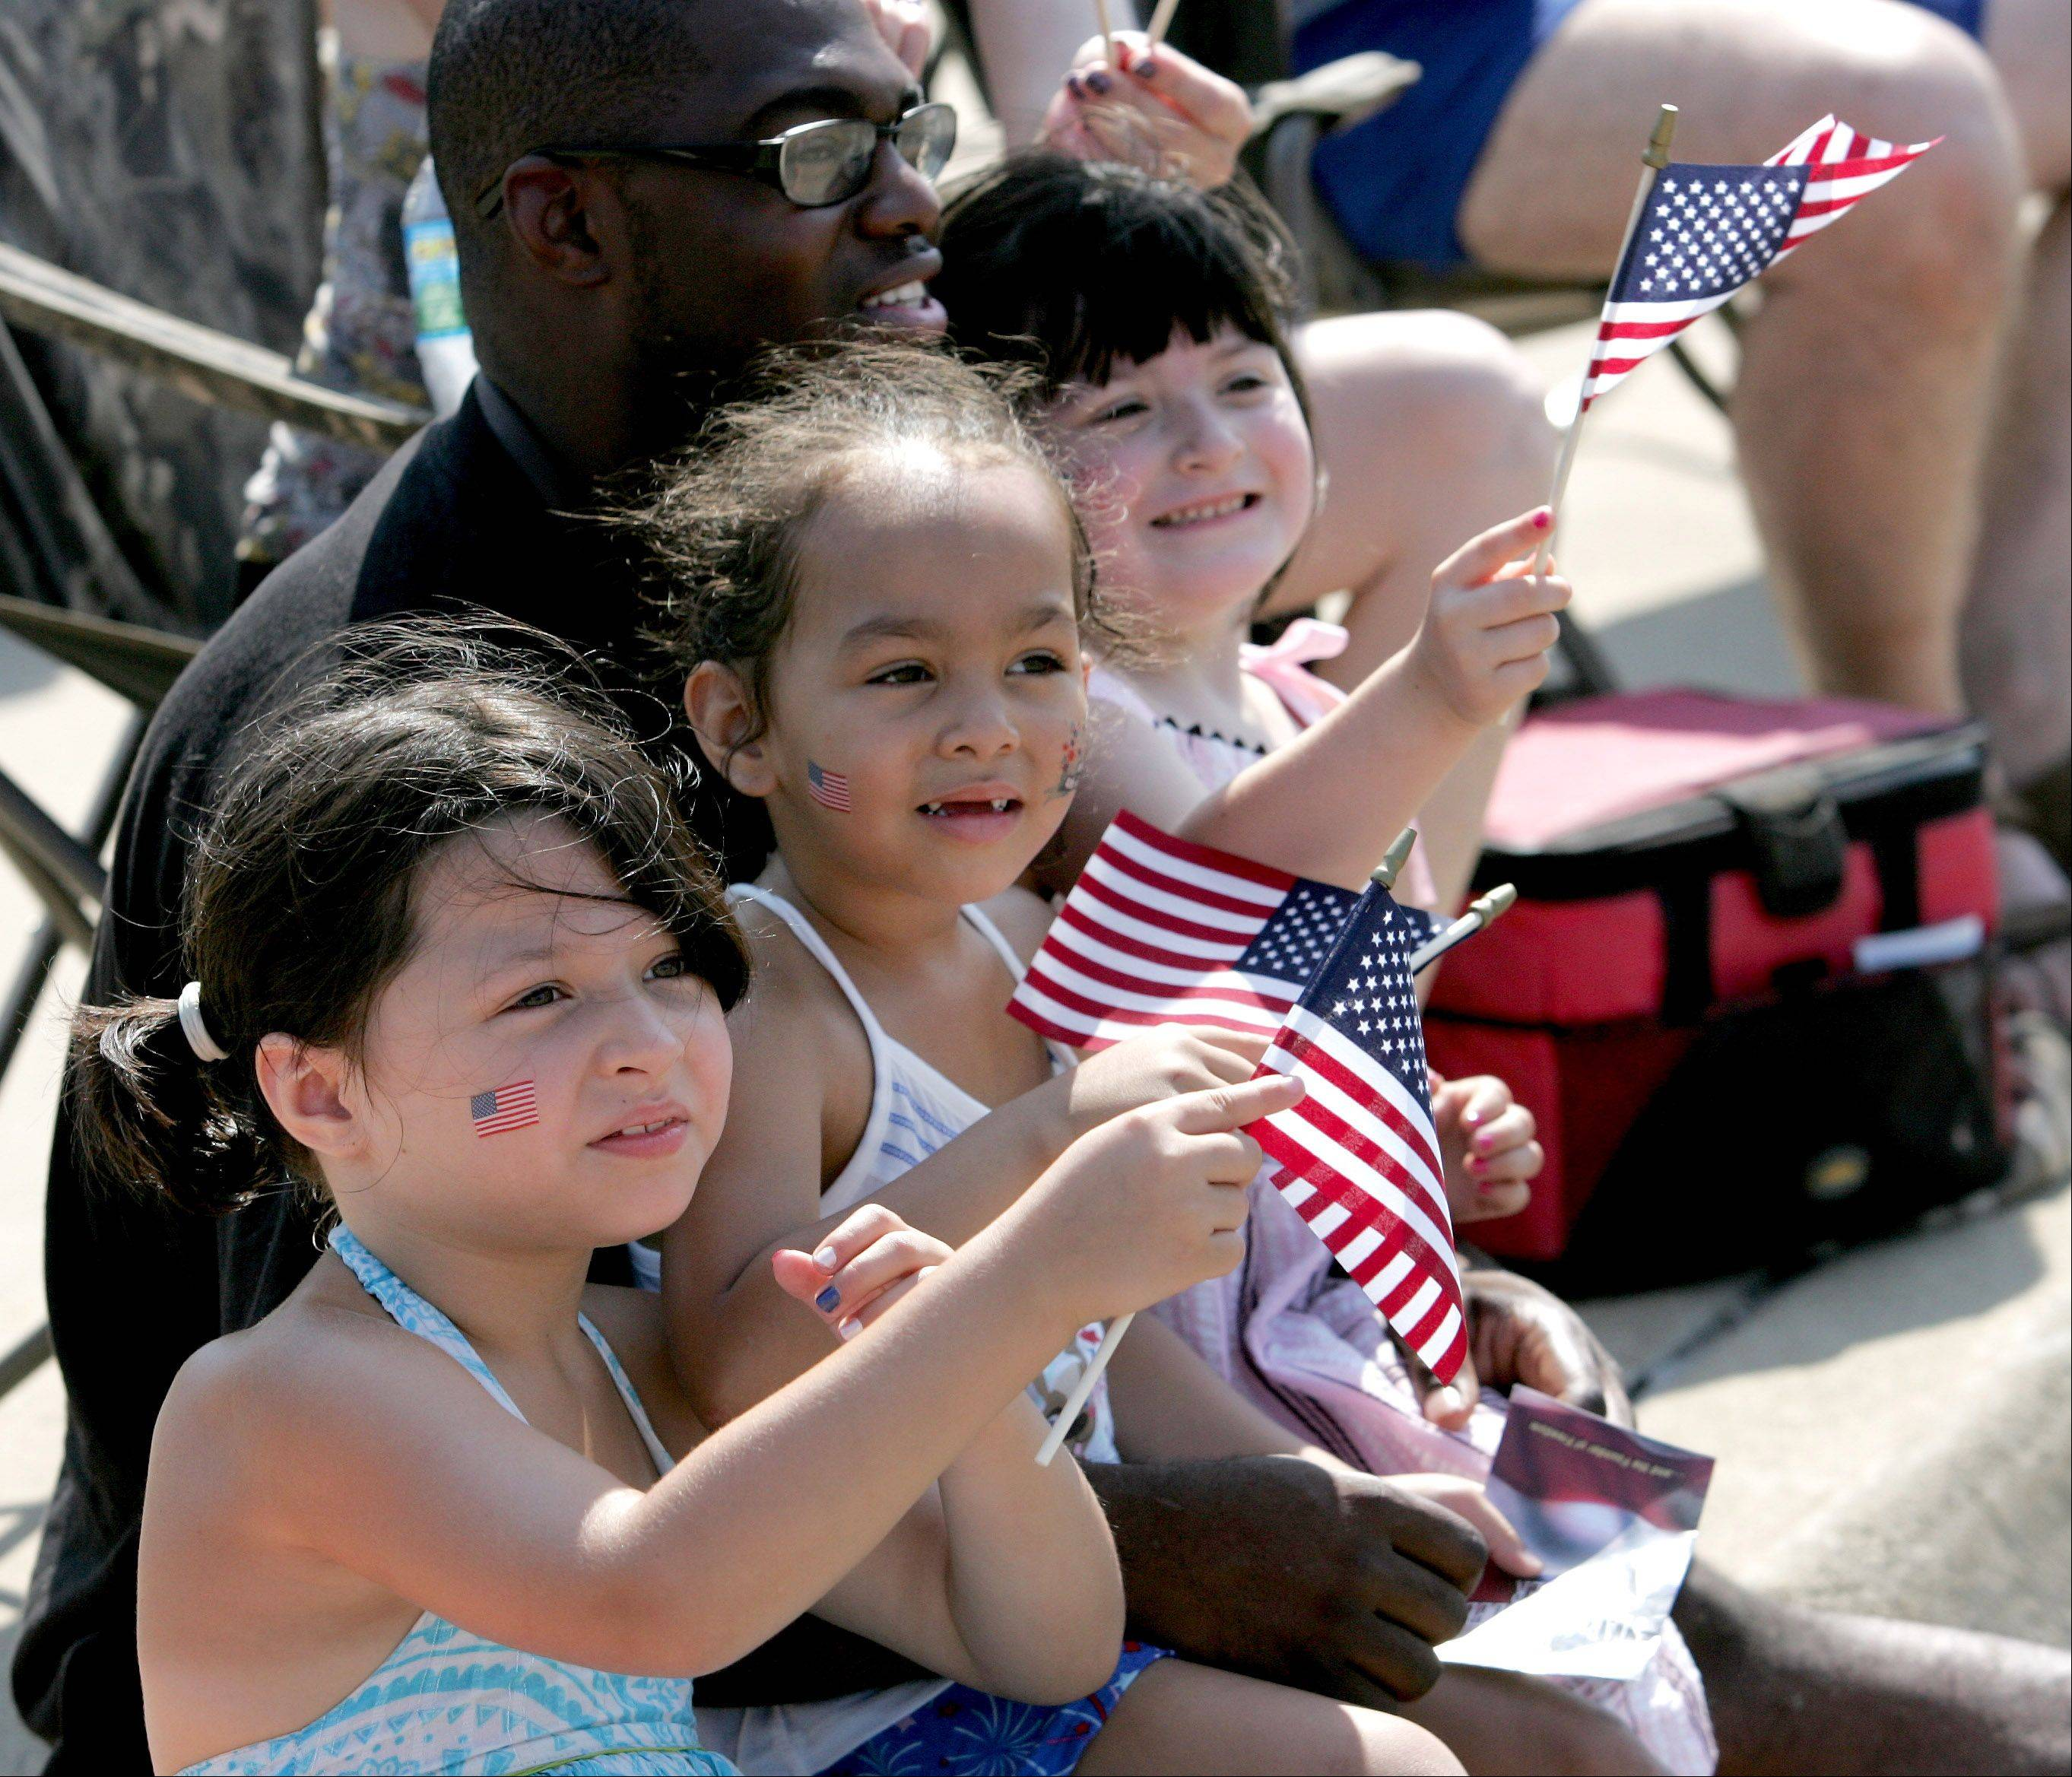 Left to right are cousins Izabella Nelson-Carrillo, 6, Cailyn Nelson-Teague, 4 and Alaina Nelson-Carrillo, 4, with Charles Teague of Aurora enjoying the 4th of July parade in Aurora on Wednesday.